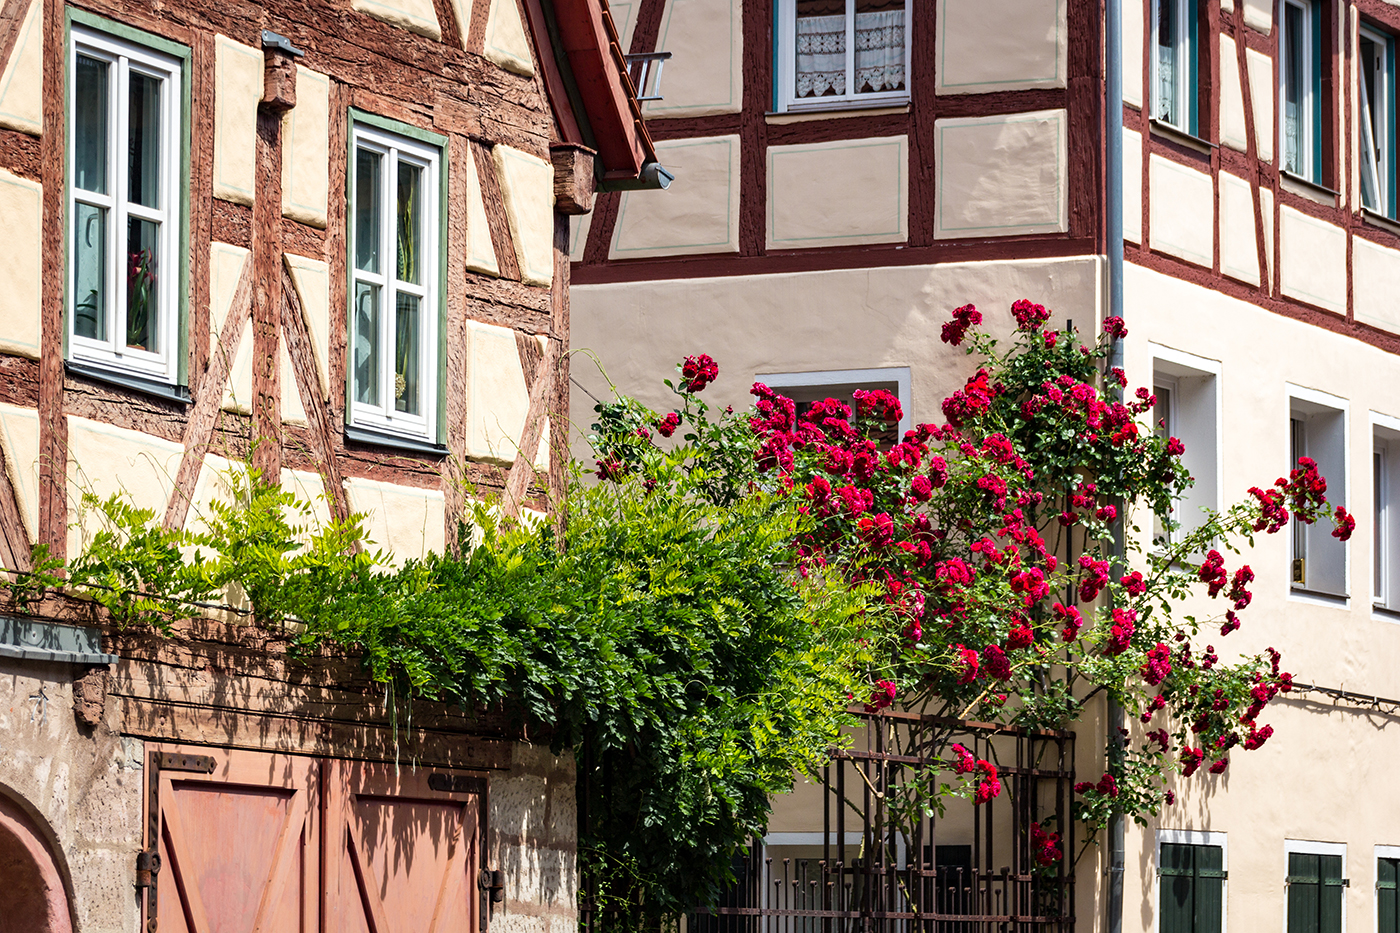 Immobilien in der Fairtrade Stadt Stein